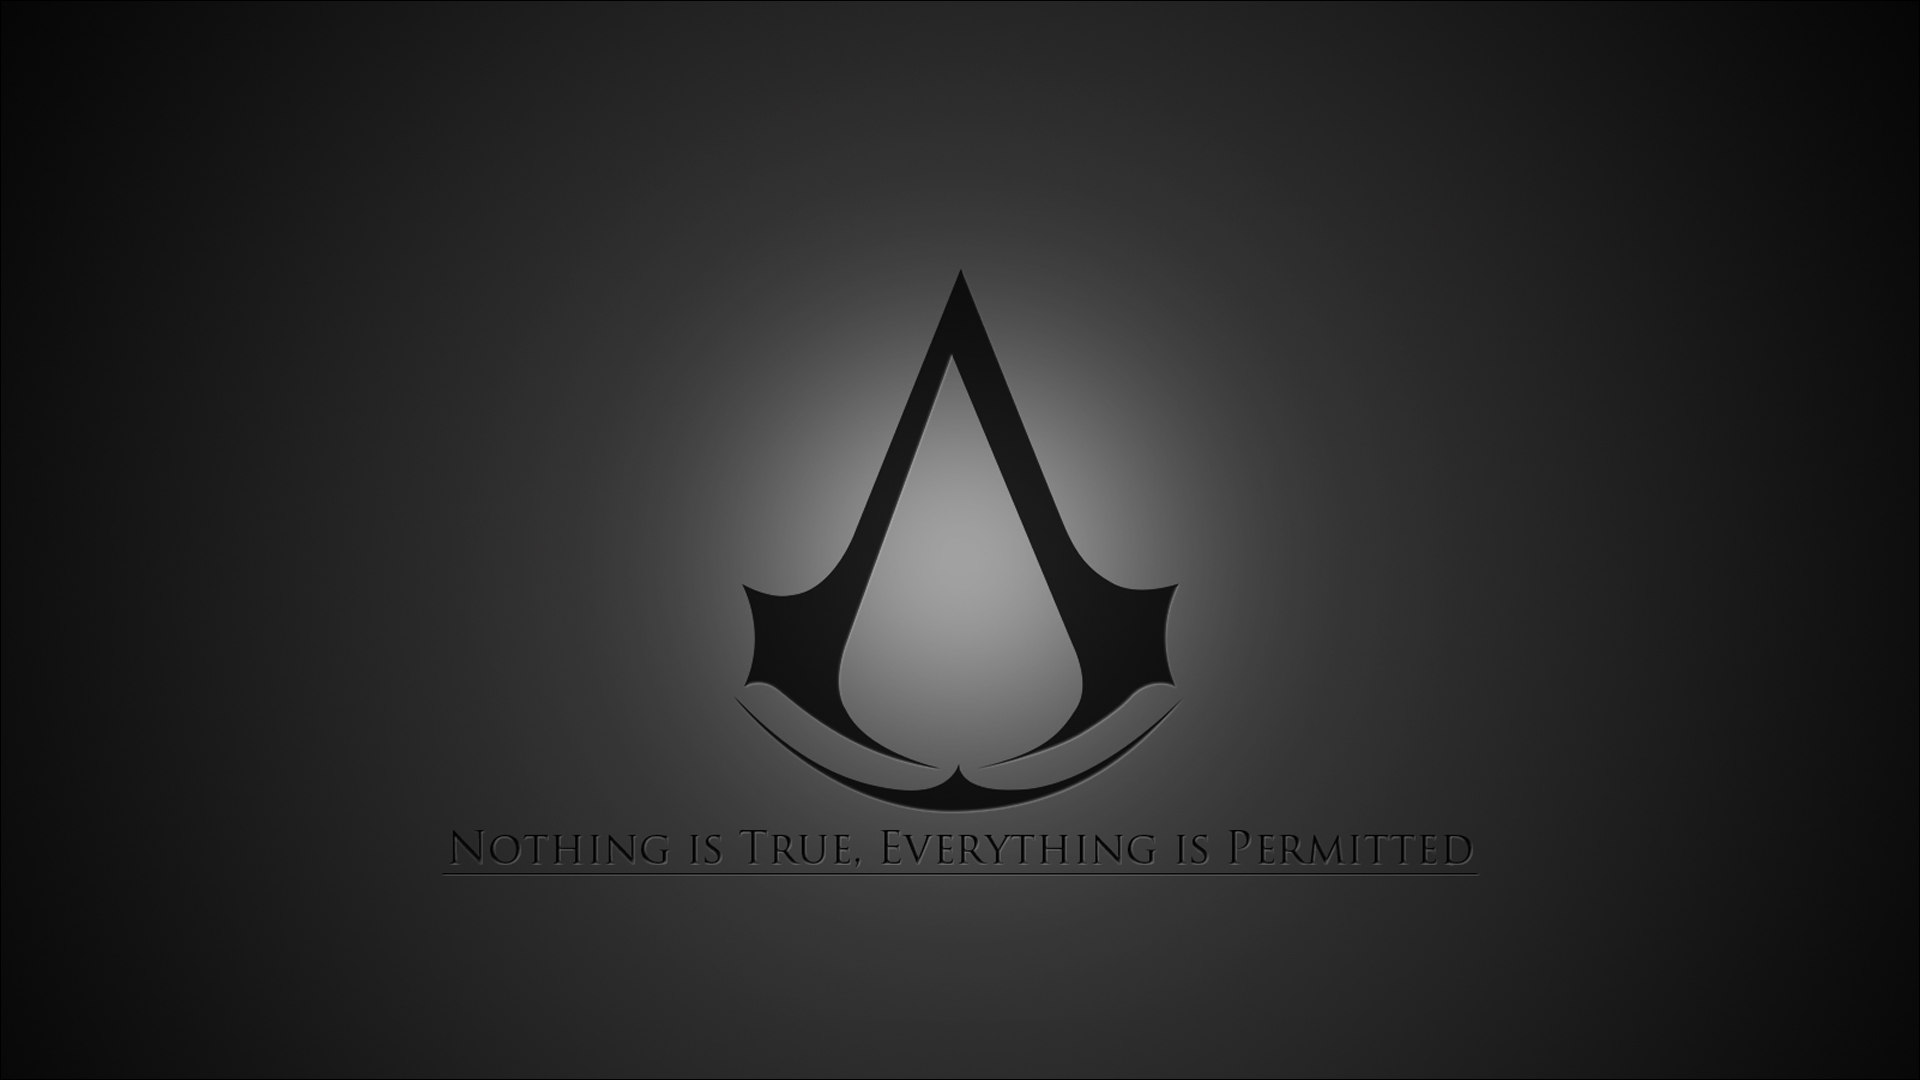 The Assassins Creed motto wallpaper   690975 1920x1080